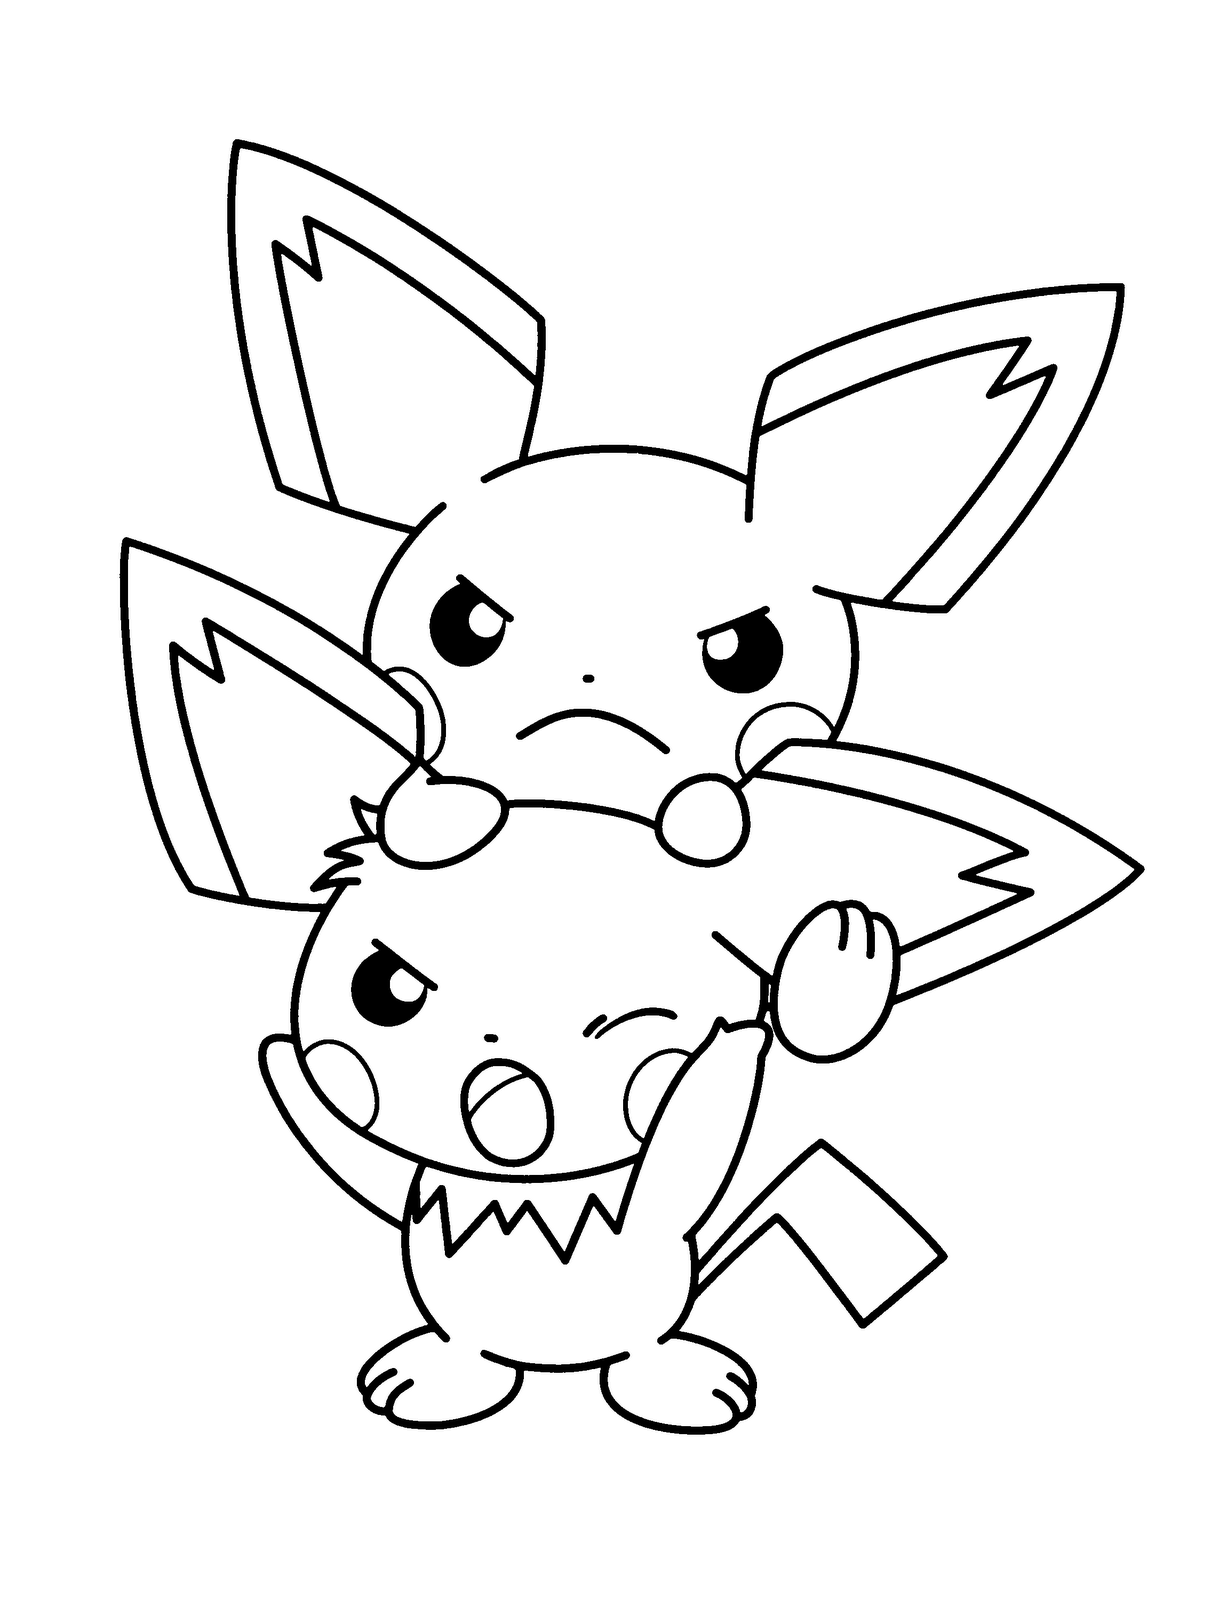 Pokemon Coloring Pages Pdf Coloring Home Colouring Pages Of